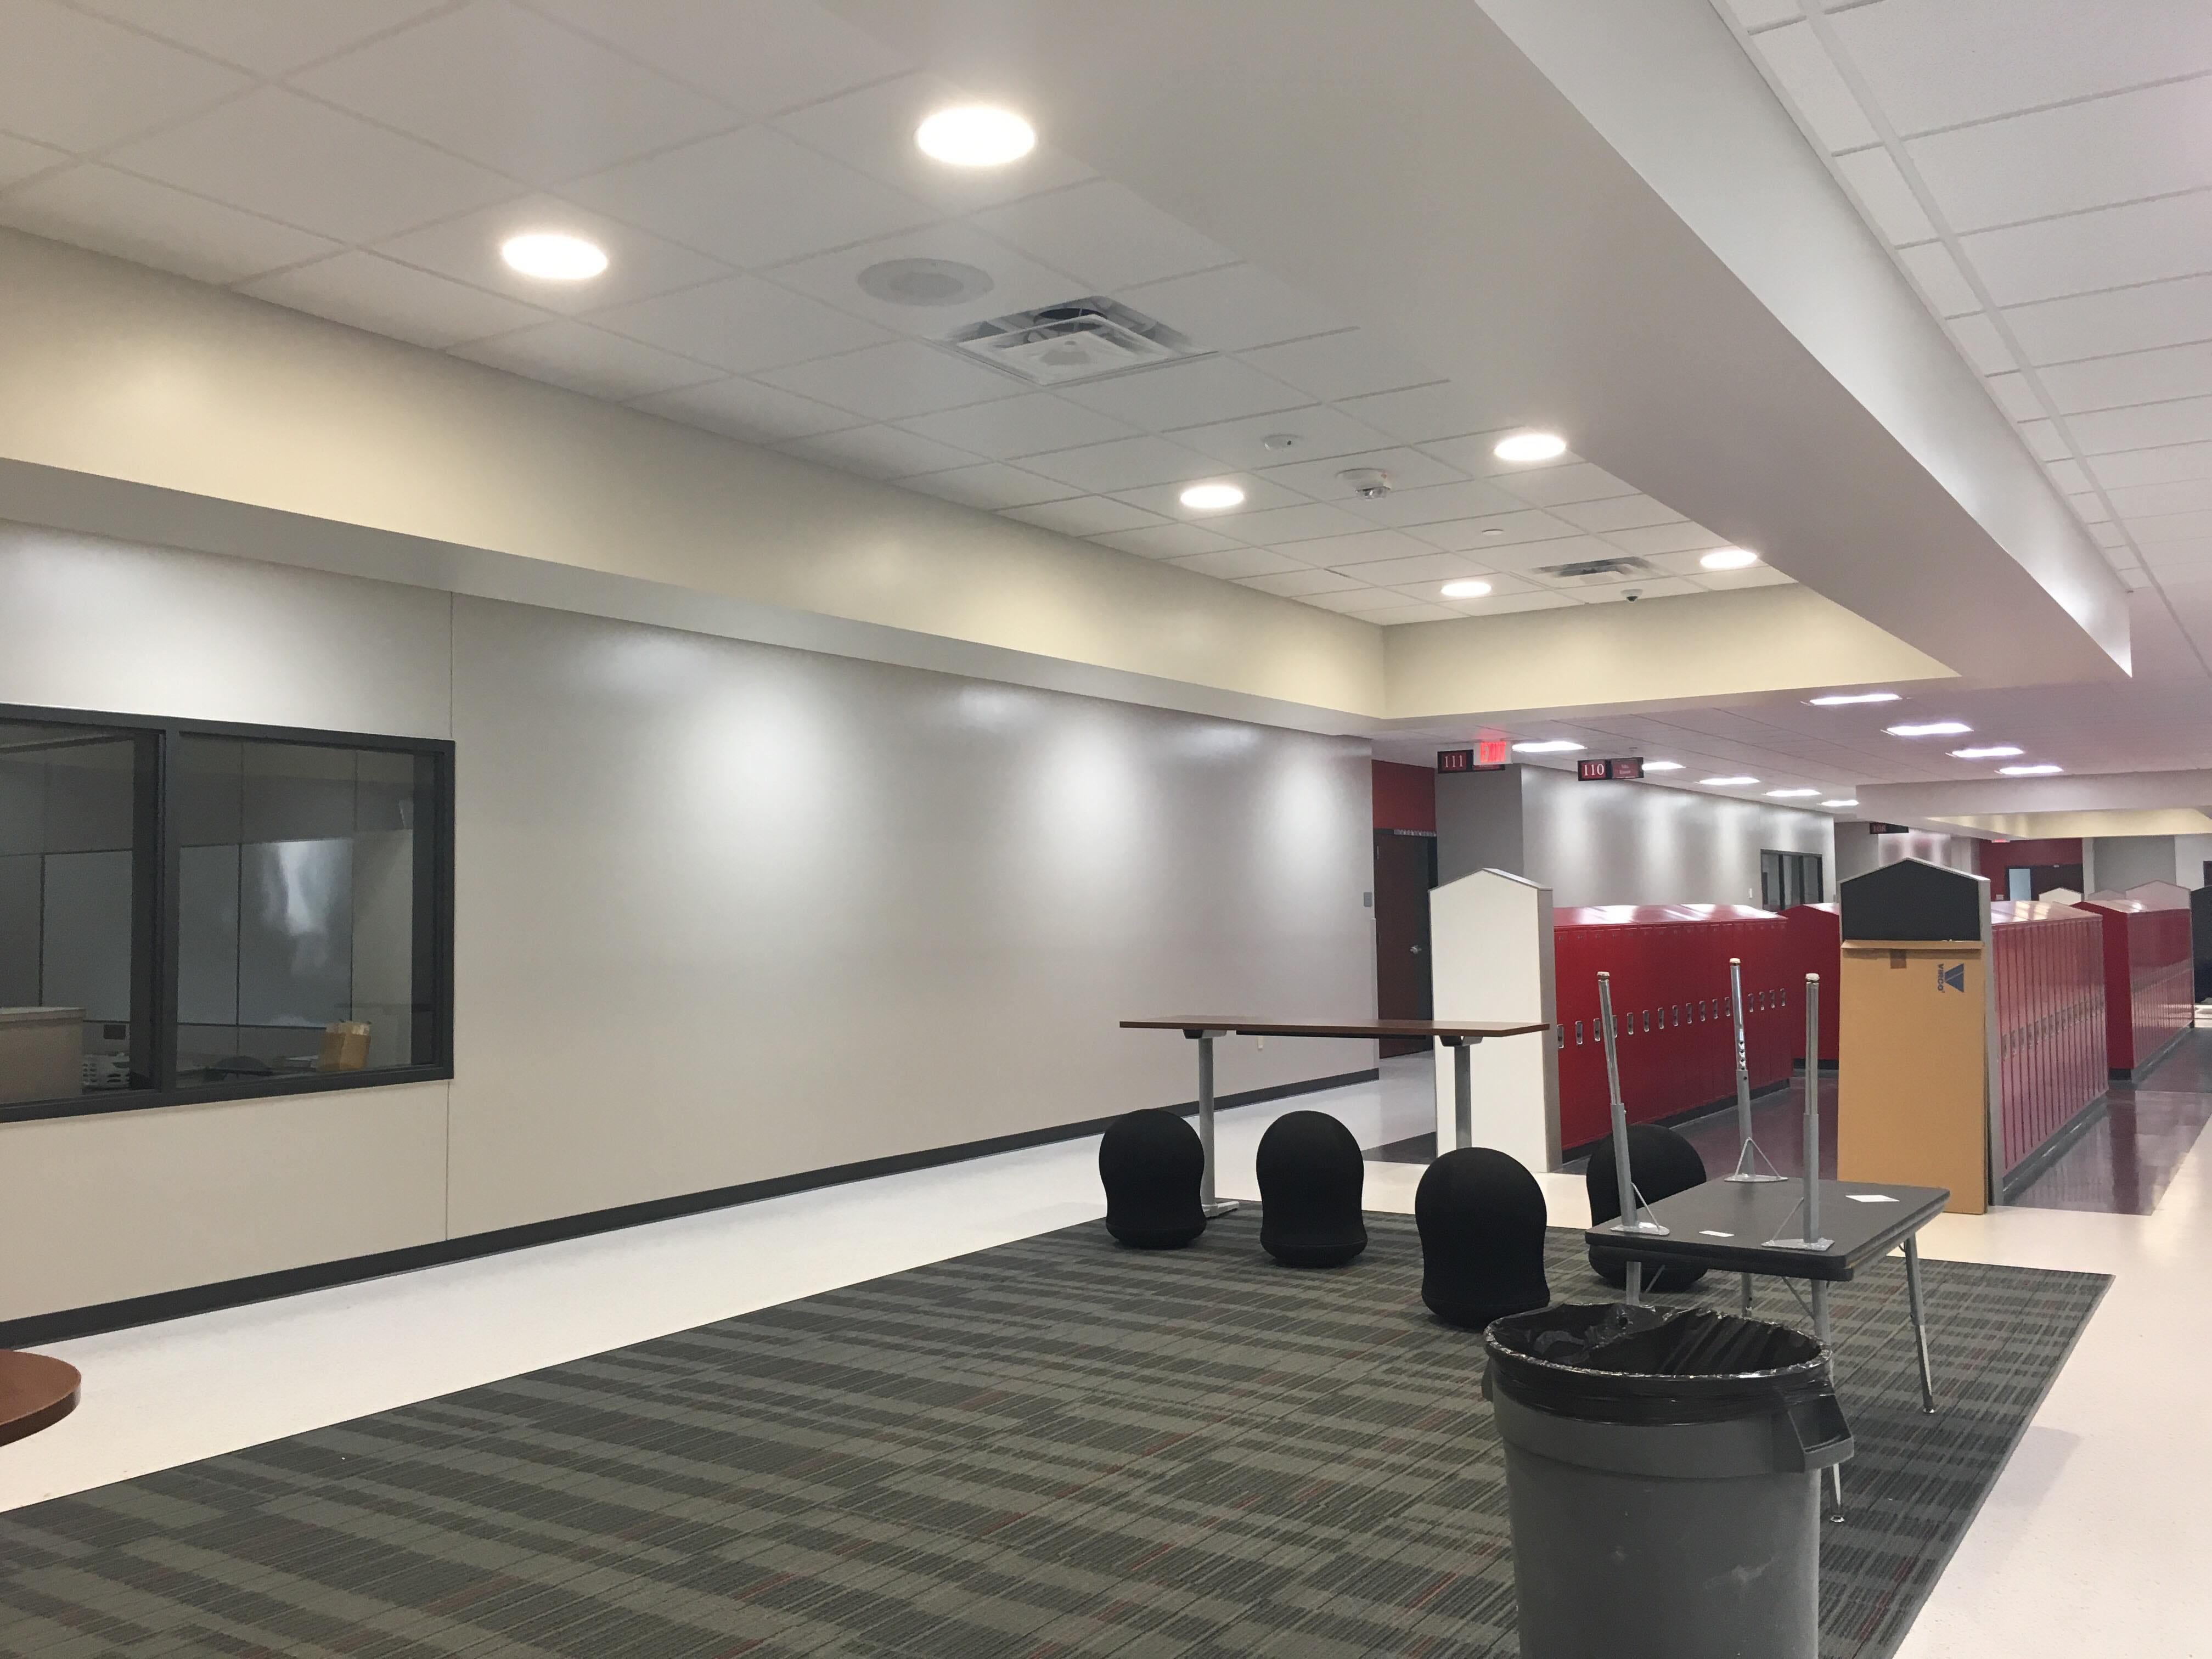 The new sixth-grade wing at Wisconsin Rapids Area Middle School, including new lockers, classrooms and gathering areas.